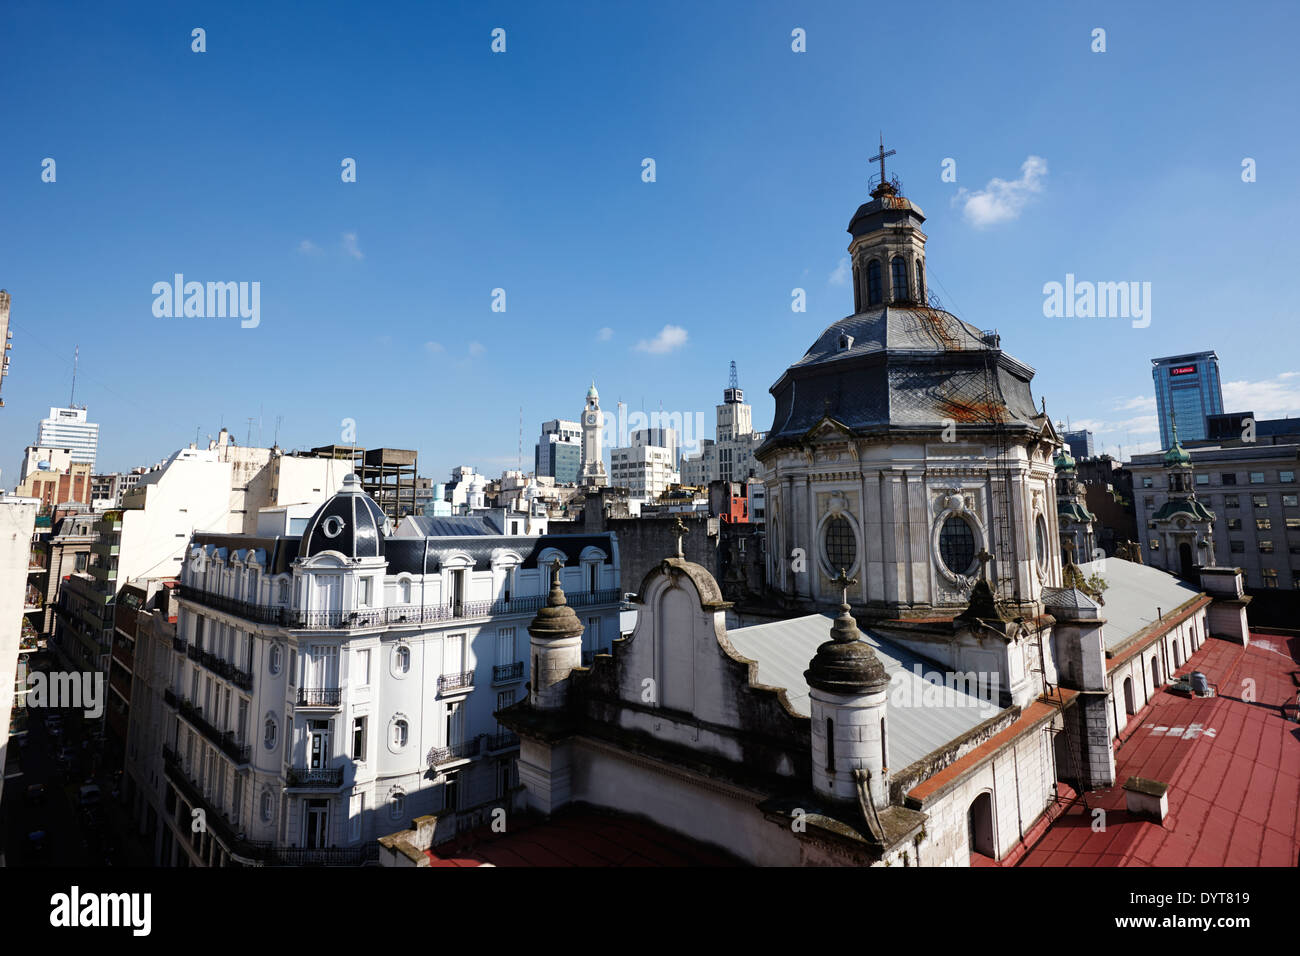 overlooking rooftops in monserrat looking towards san francisco church Buenos Aires Argentina - Stock Image